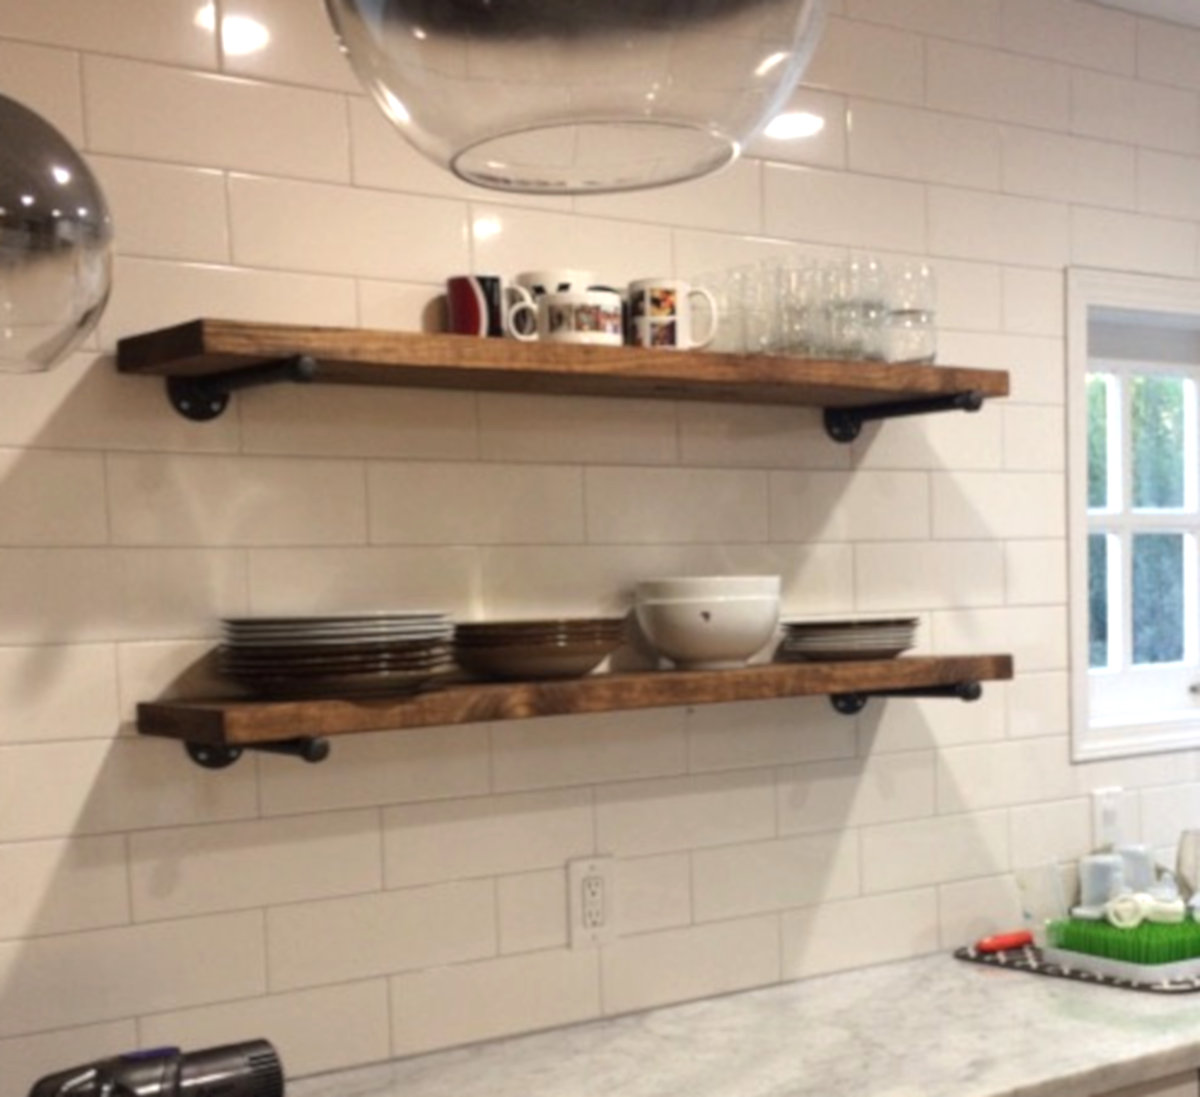 extra long deep rustic farmhouse floating shelves etsy fullxfull cths shelf wood beam mantle kitchen side inch hanging coat rack black brackets hidden storage house oak open wall